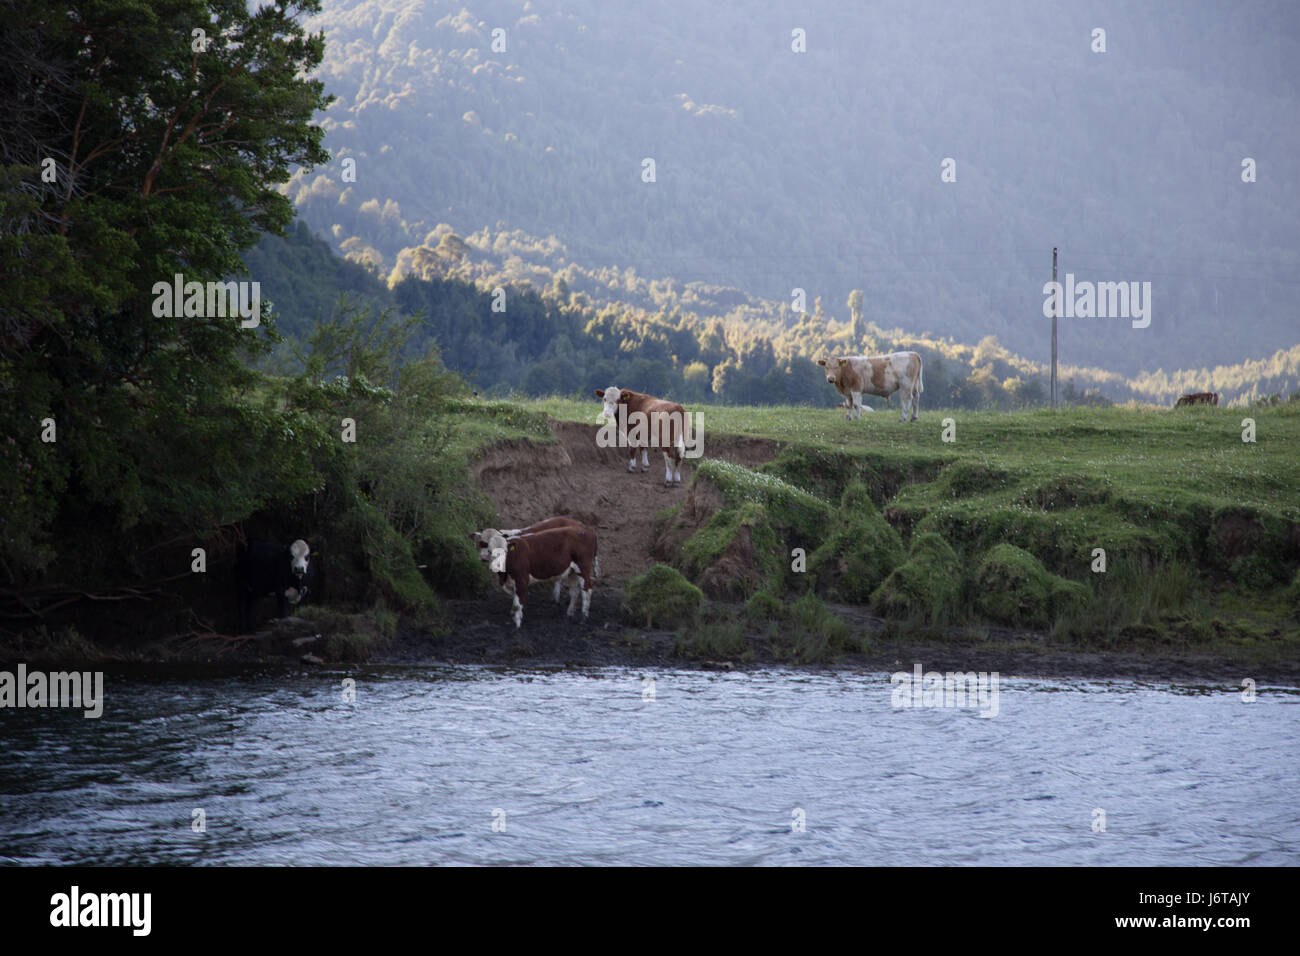 cows at the shore of the Aysen canals. - Stock Image